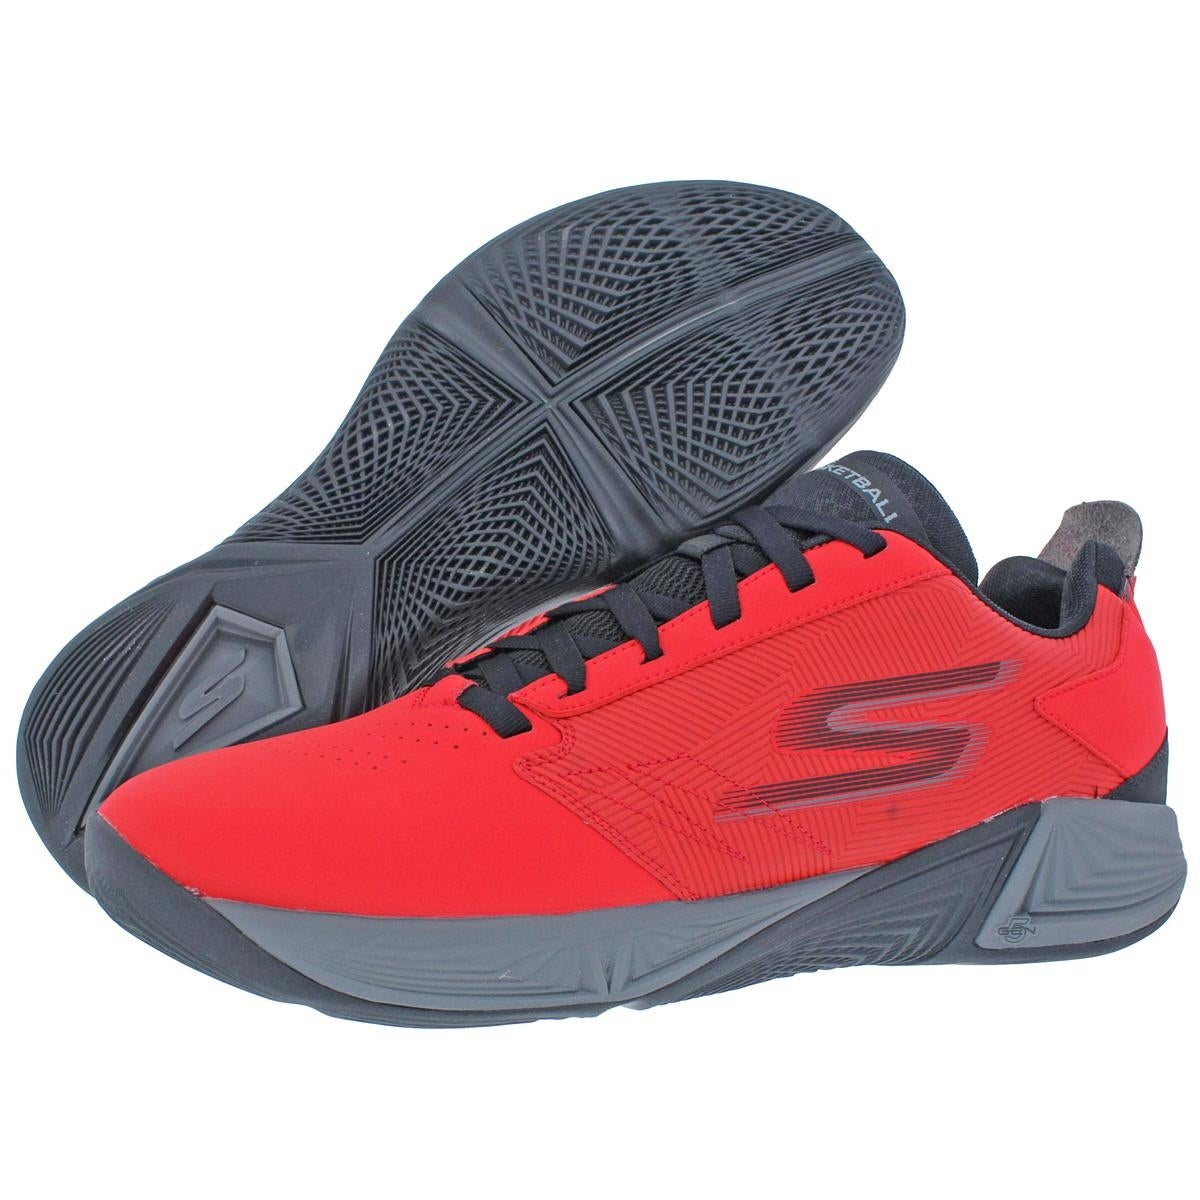 965a434280e Shop Skechers Torch LT Men s Synthetic Low Top Basketball Shoes Red Size 12  - 12 medium (d) - Free Shipping Today - Overstock - 22732957